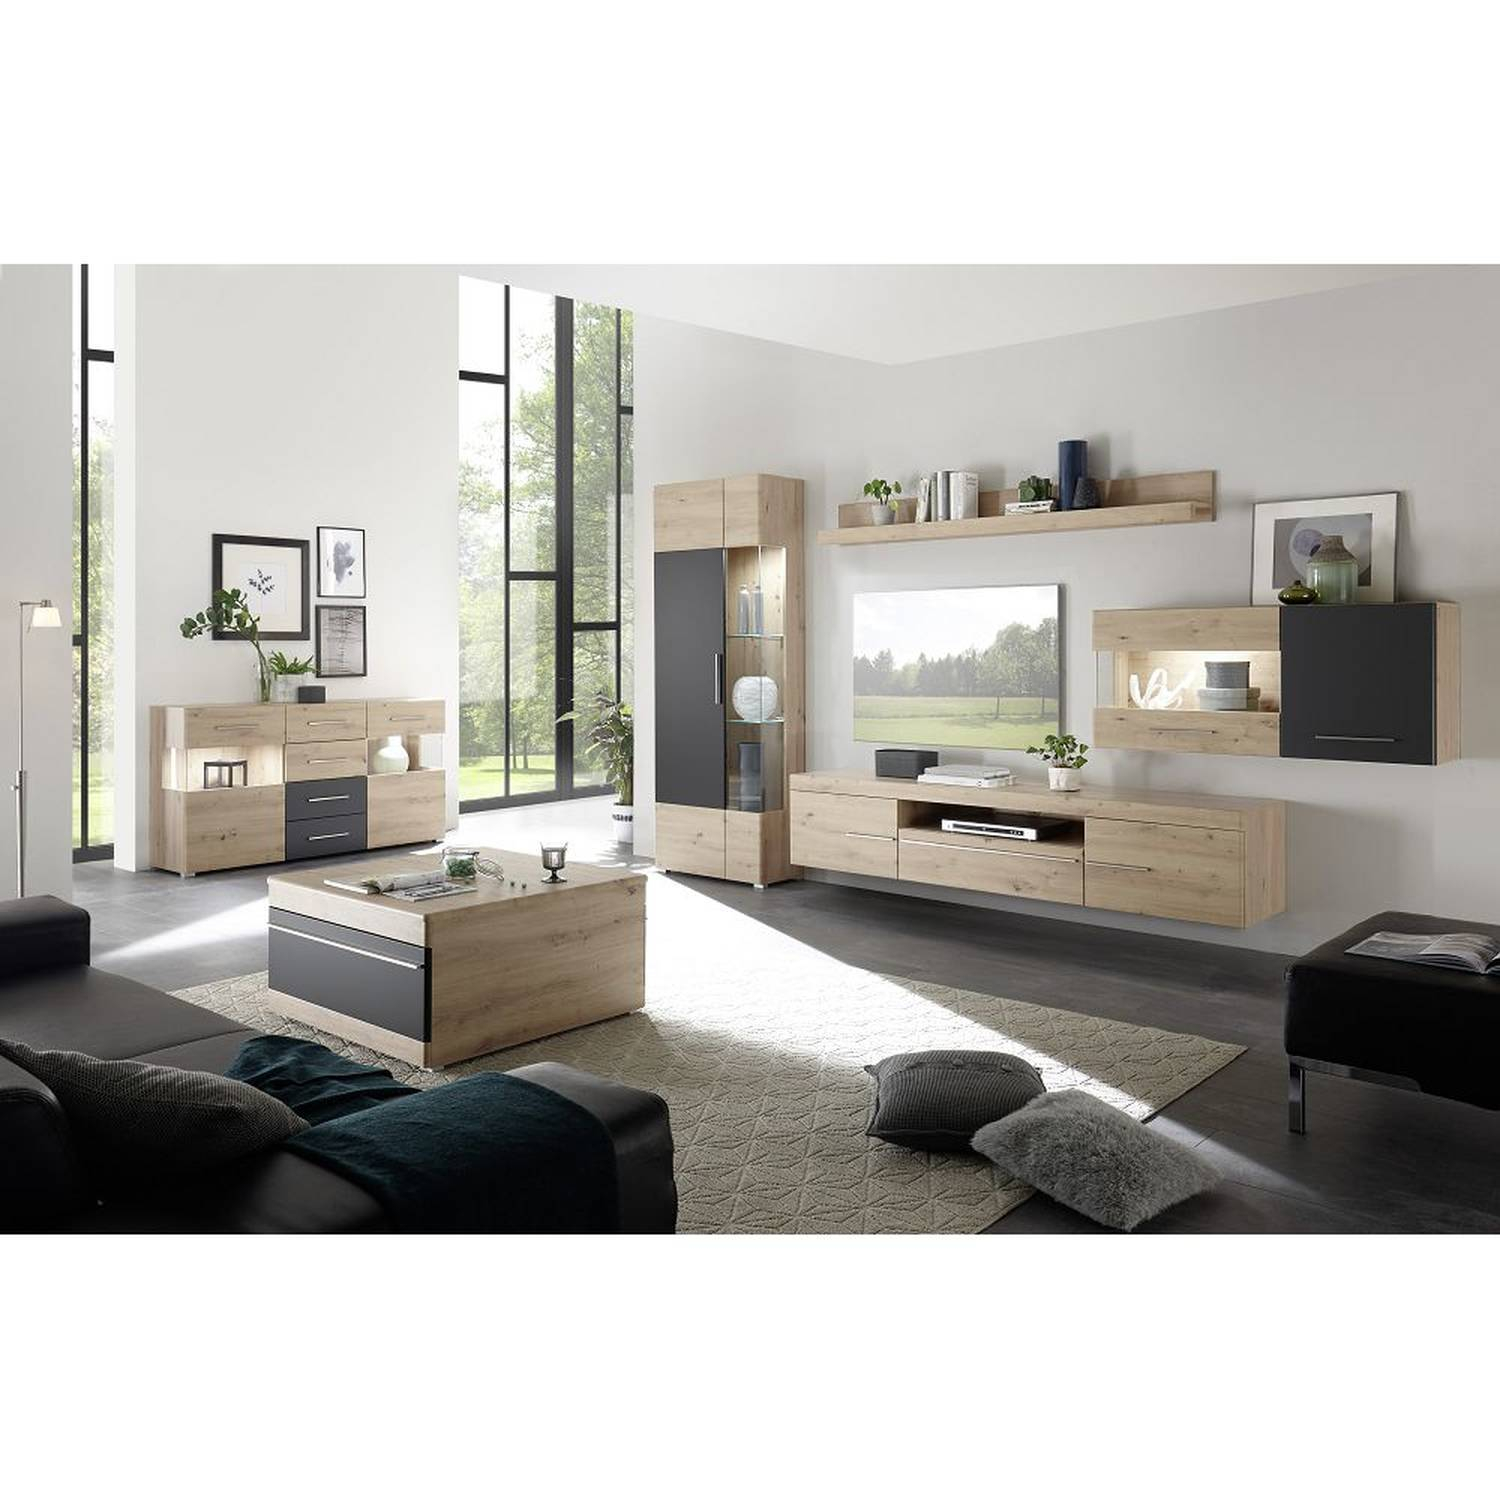 Living Room Complete Set Split 61 Wall Unit Coffee Table Sideboard In Artisan Oak Nb Dimensions Wall Unit Whd 34720035 45cm pertaining to 15 Some of the Coolest Initiatives of How to Make Living Room Complete Sets